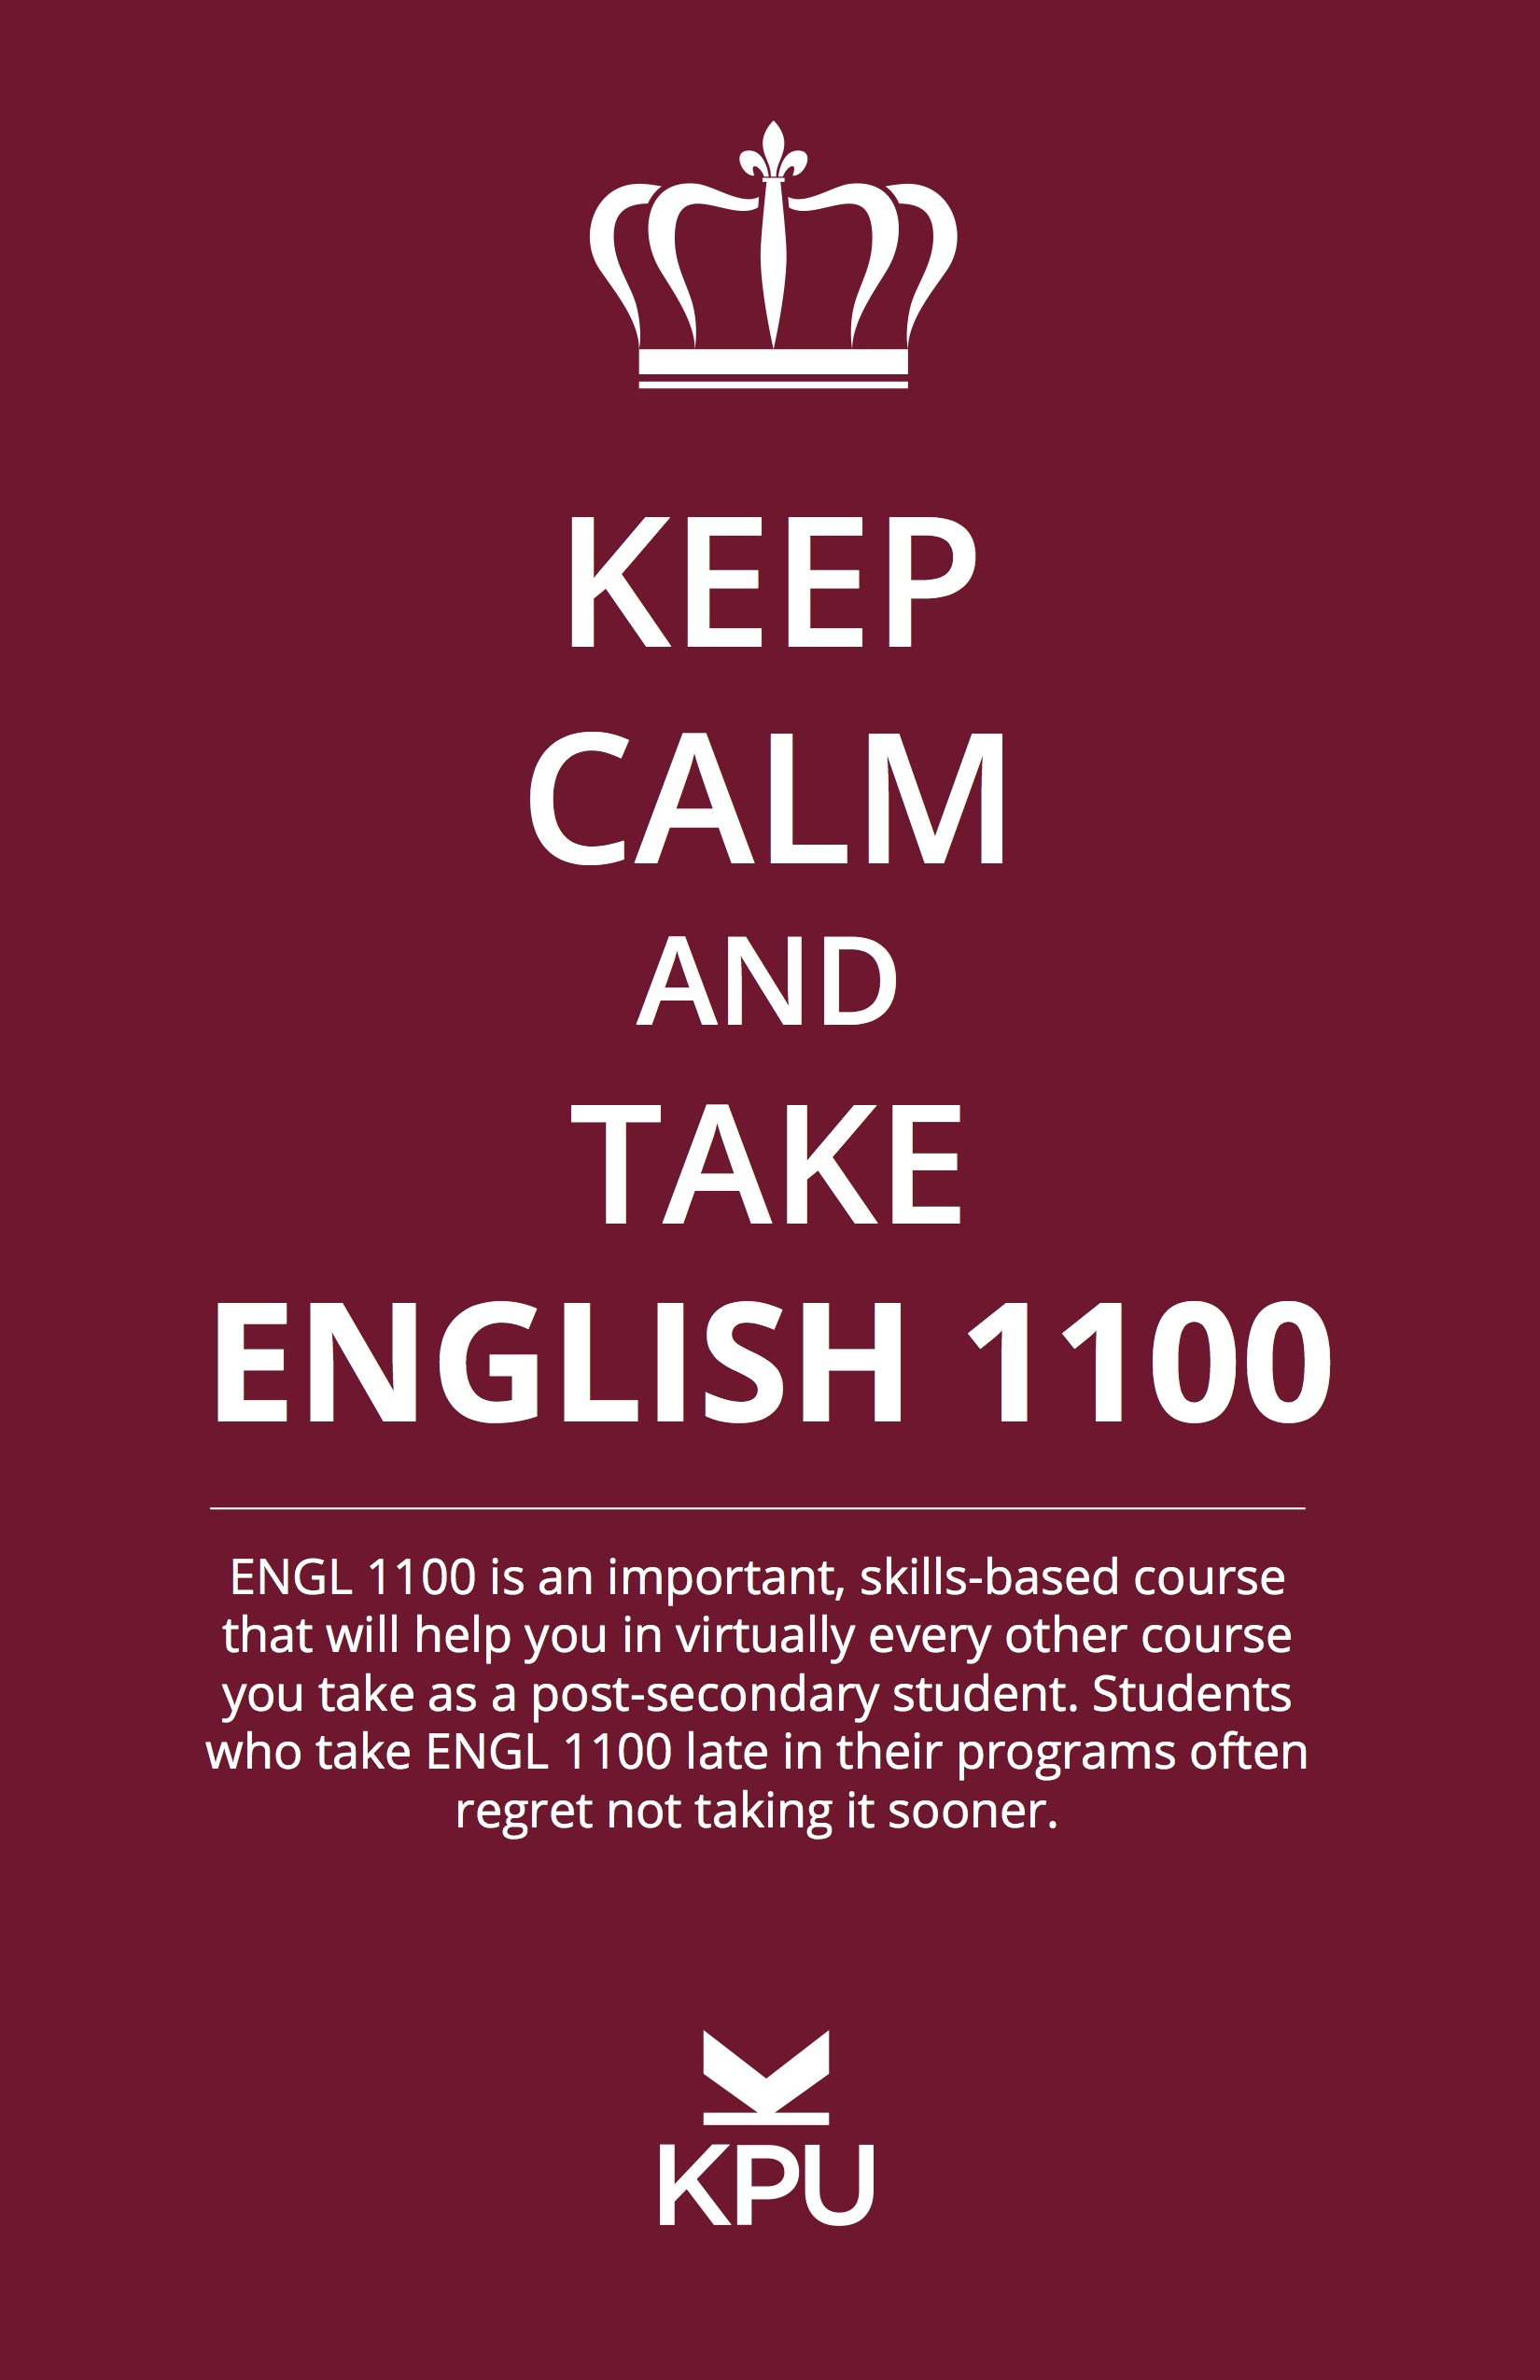 For more information on ENGL 1100, click  here.